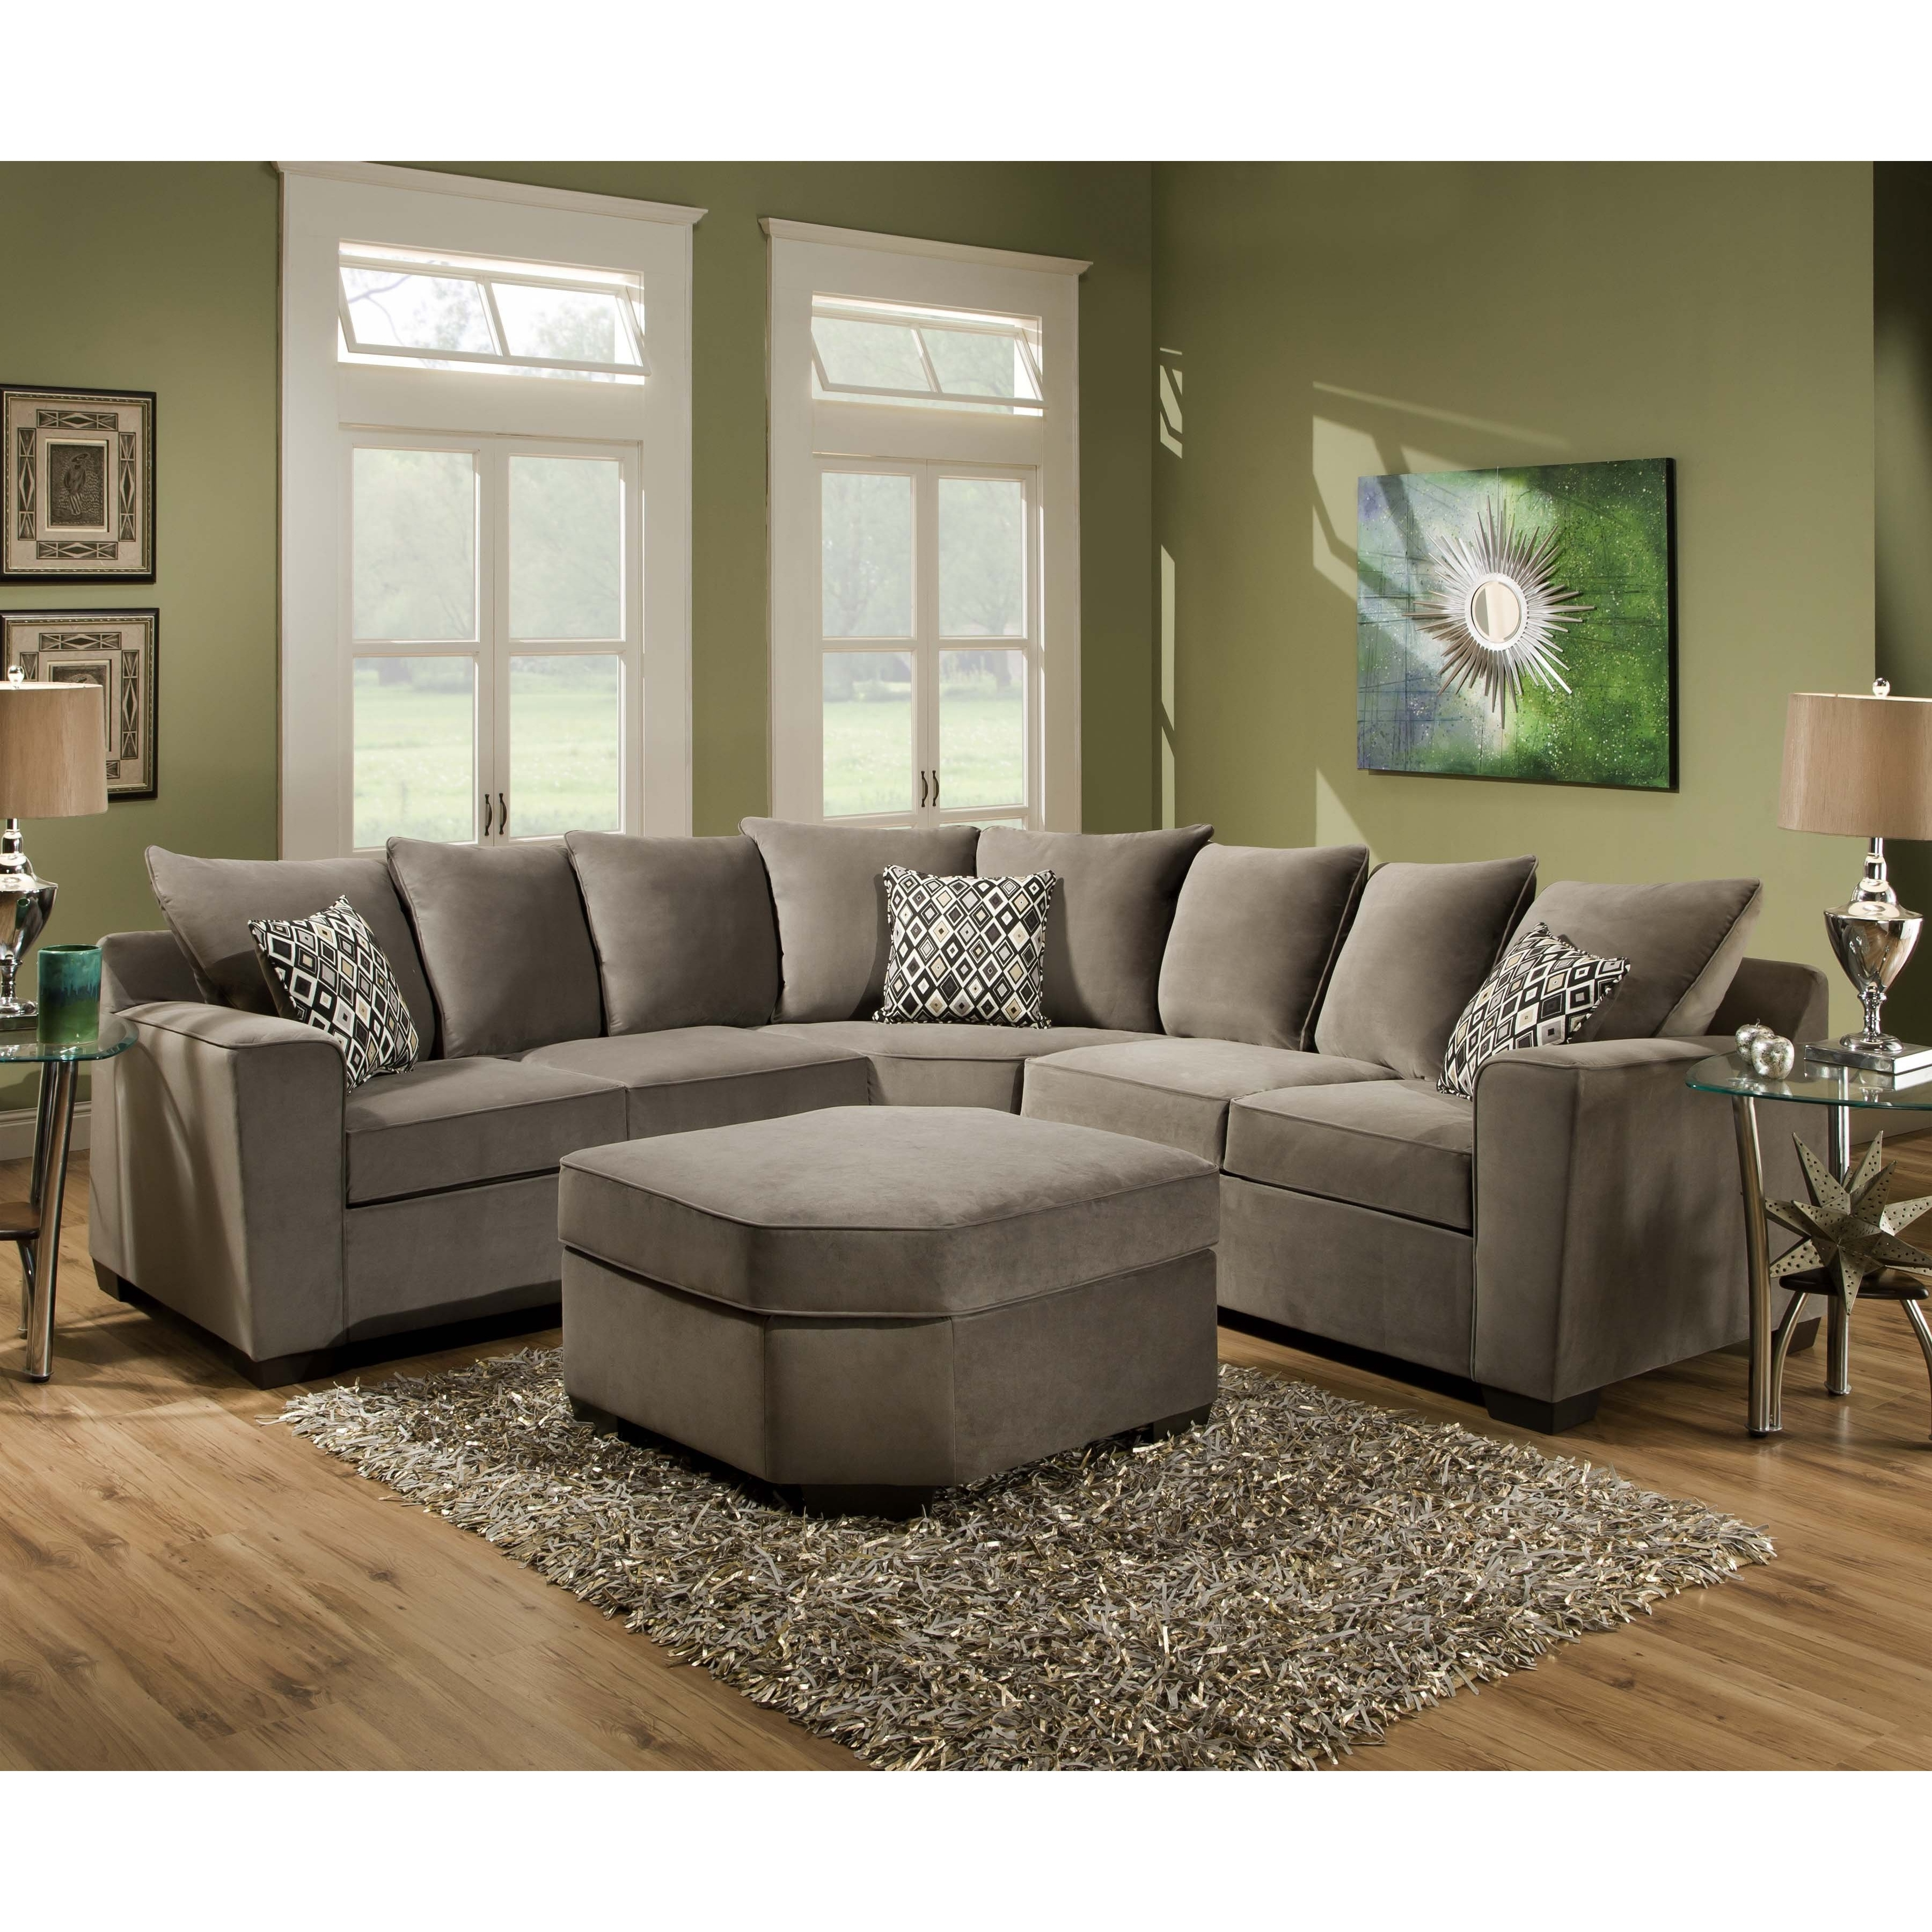 96X96 Sectional Sofas regarding Most Recently Released Elliot Fabric Microfiber 2 Piece Sectional Sofa Elliot Fabric